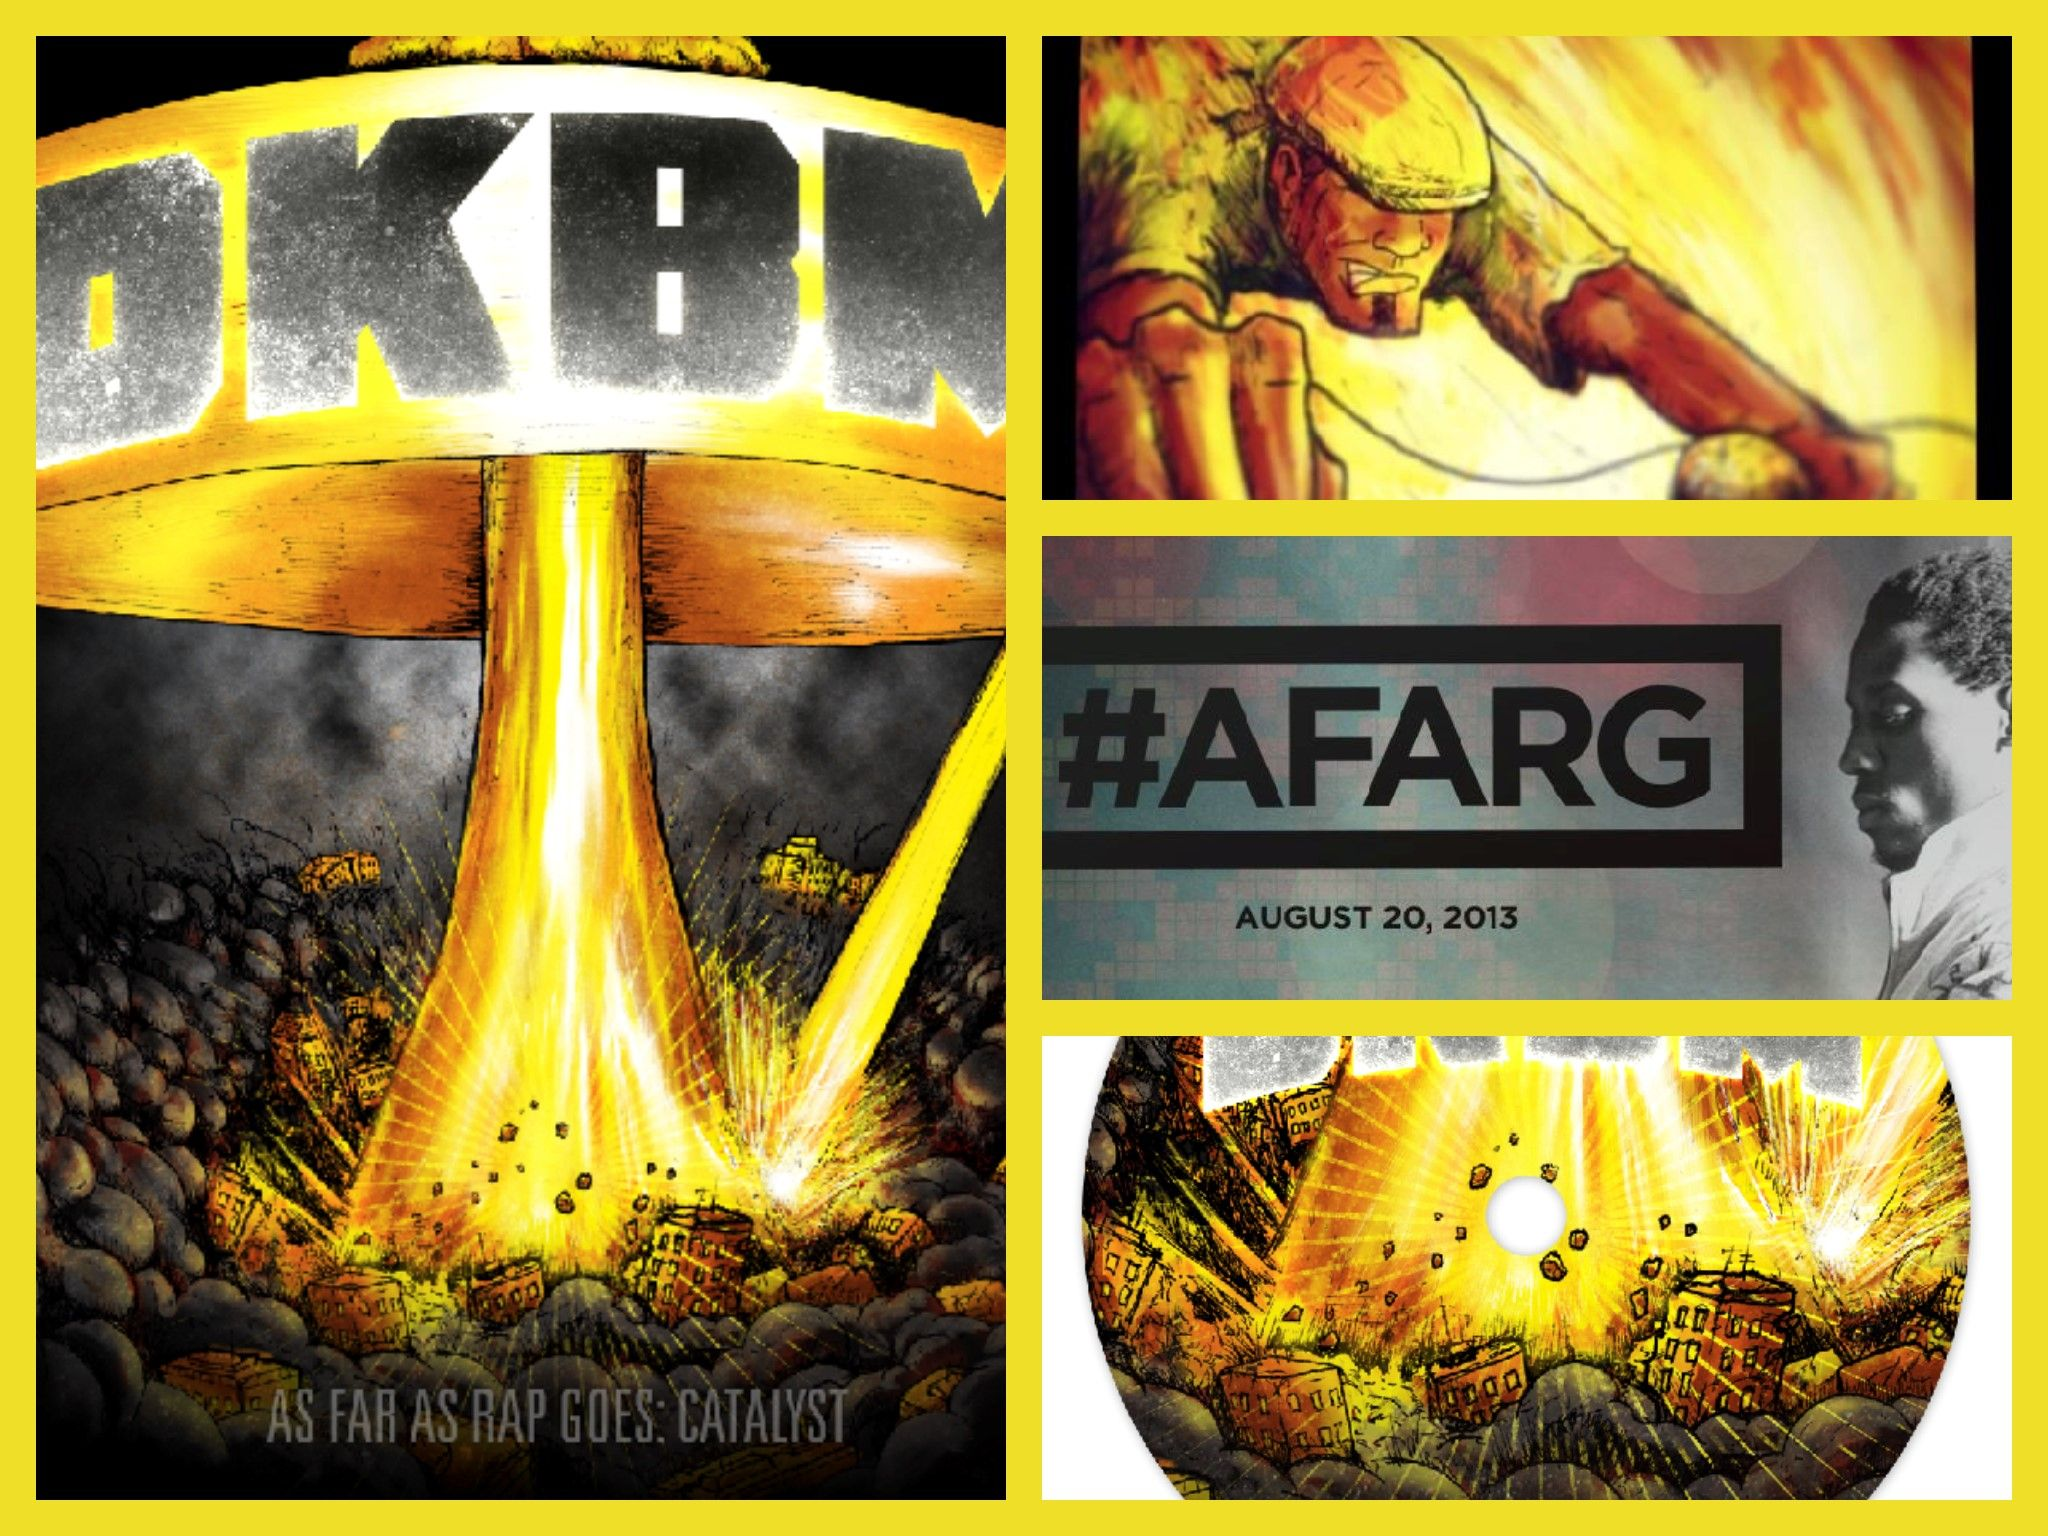 Album Available for Purchase TODAY! http://drewkaboom.bandcamp.com/ #supportlocalartists #dkbm #AFARG